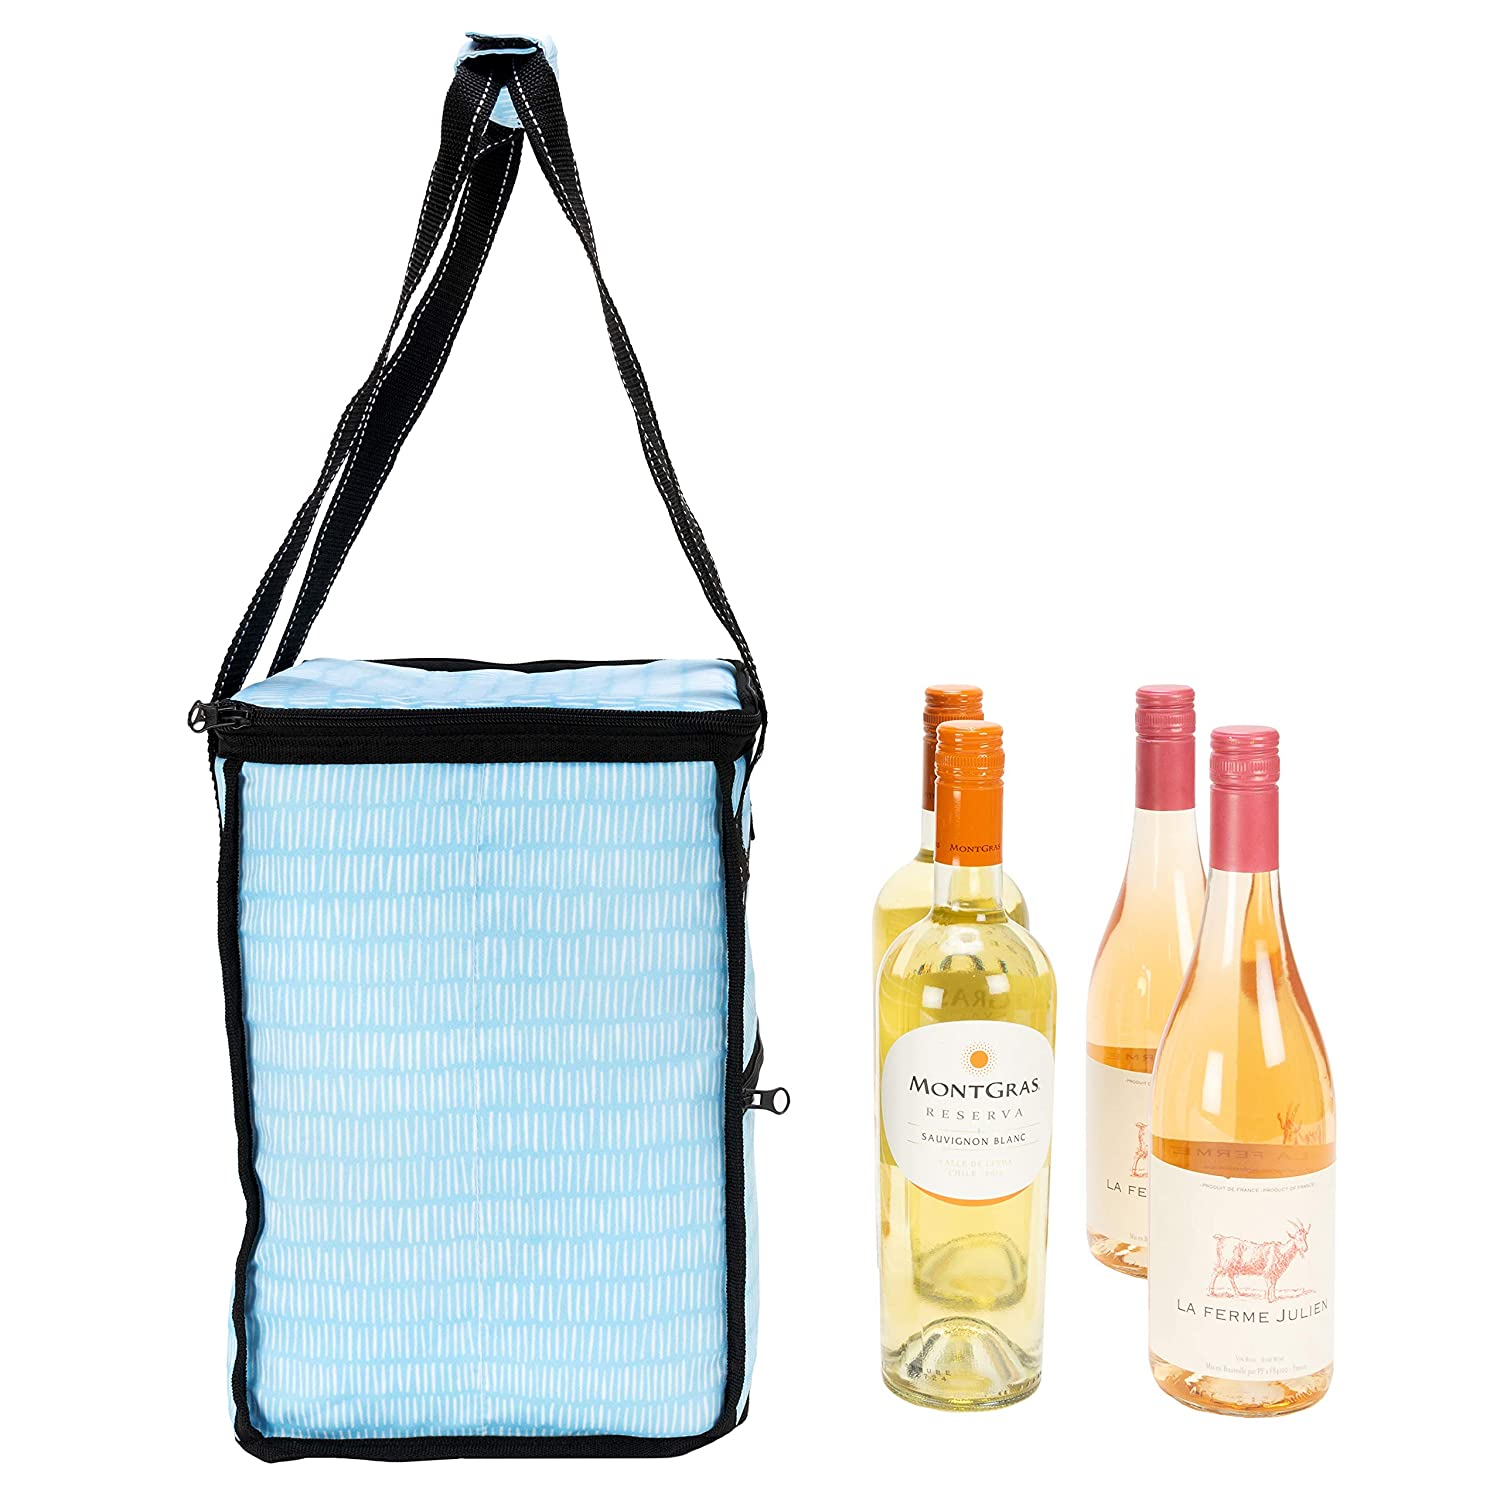 PVC-Free Liner Water Resistant Fits a 6 Pack or 4 Bottles of Wine SCOUT Pleasure Chest Insulated Soft Cooler Zips Closed Heat-Sealed